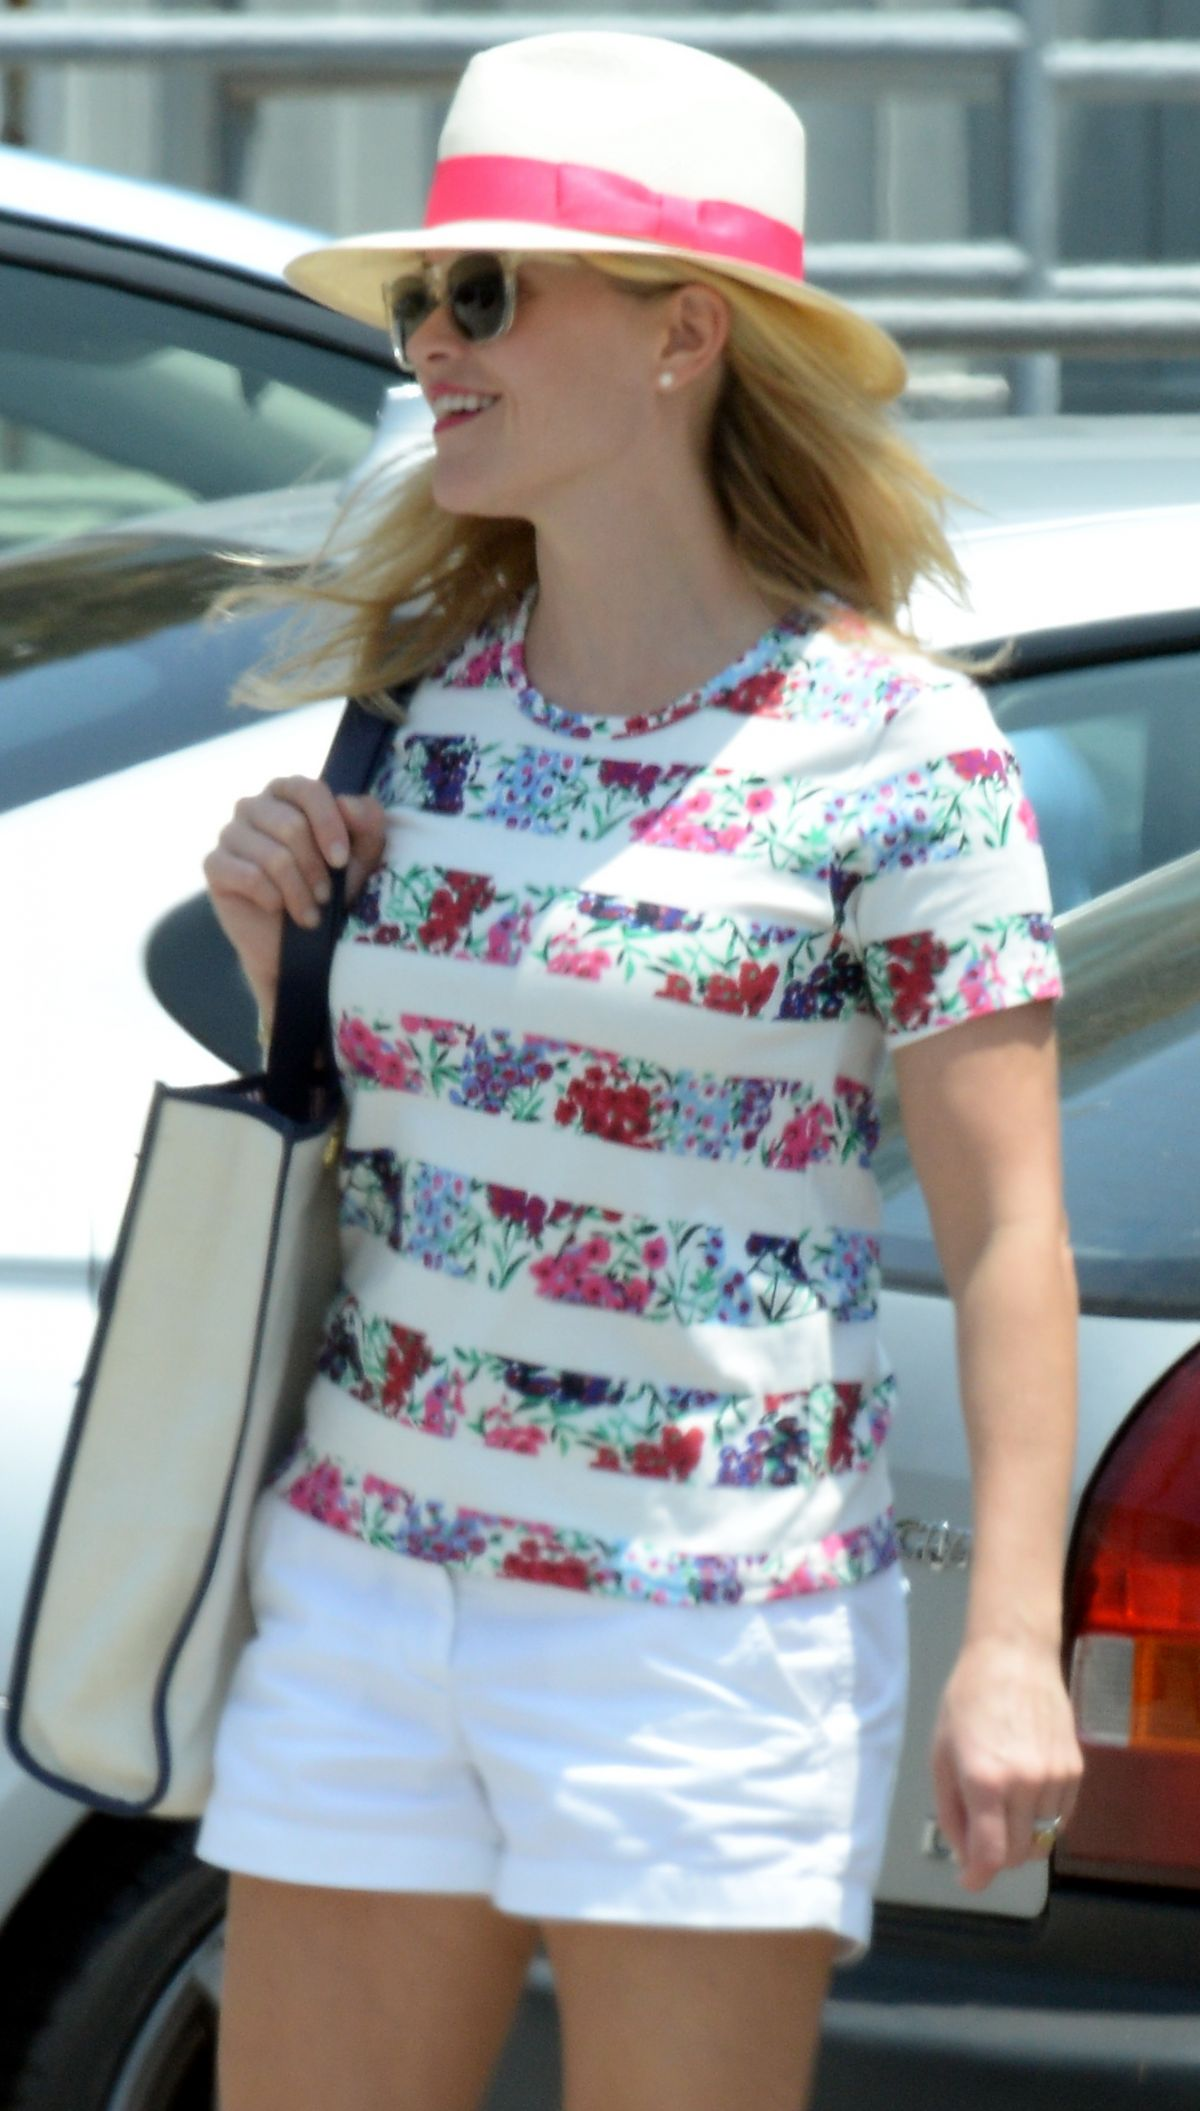 REESE WITHERSPOON Shoping at Sephora in Santa Monica 05/23/2015